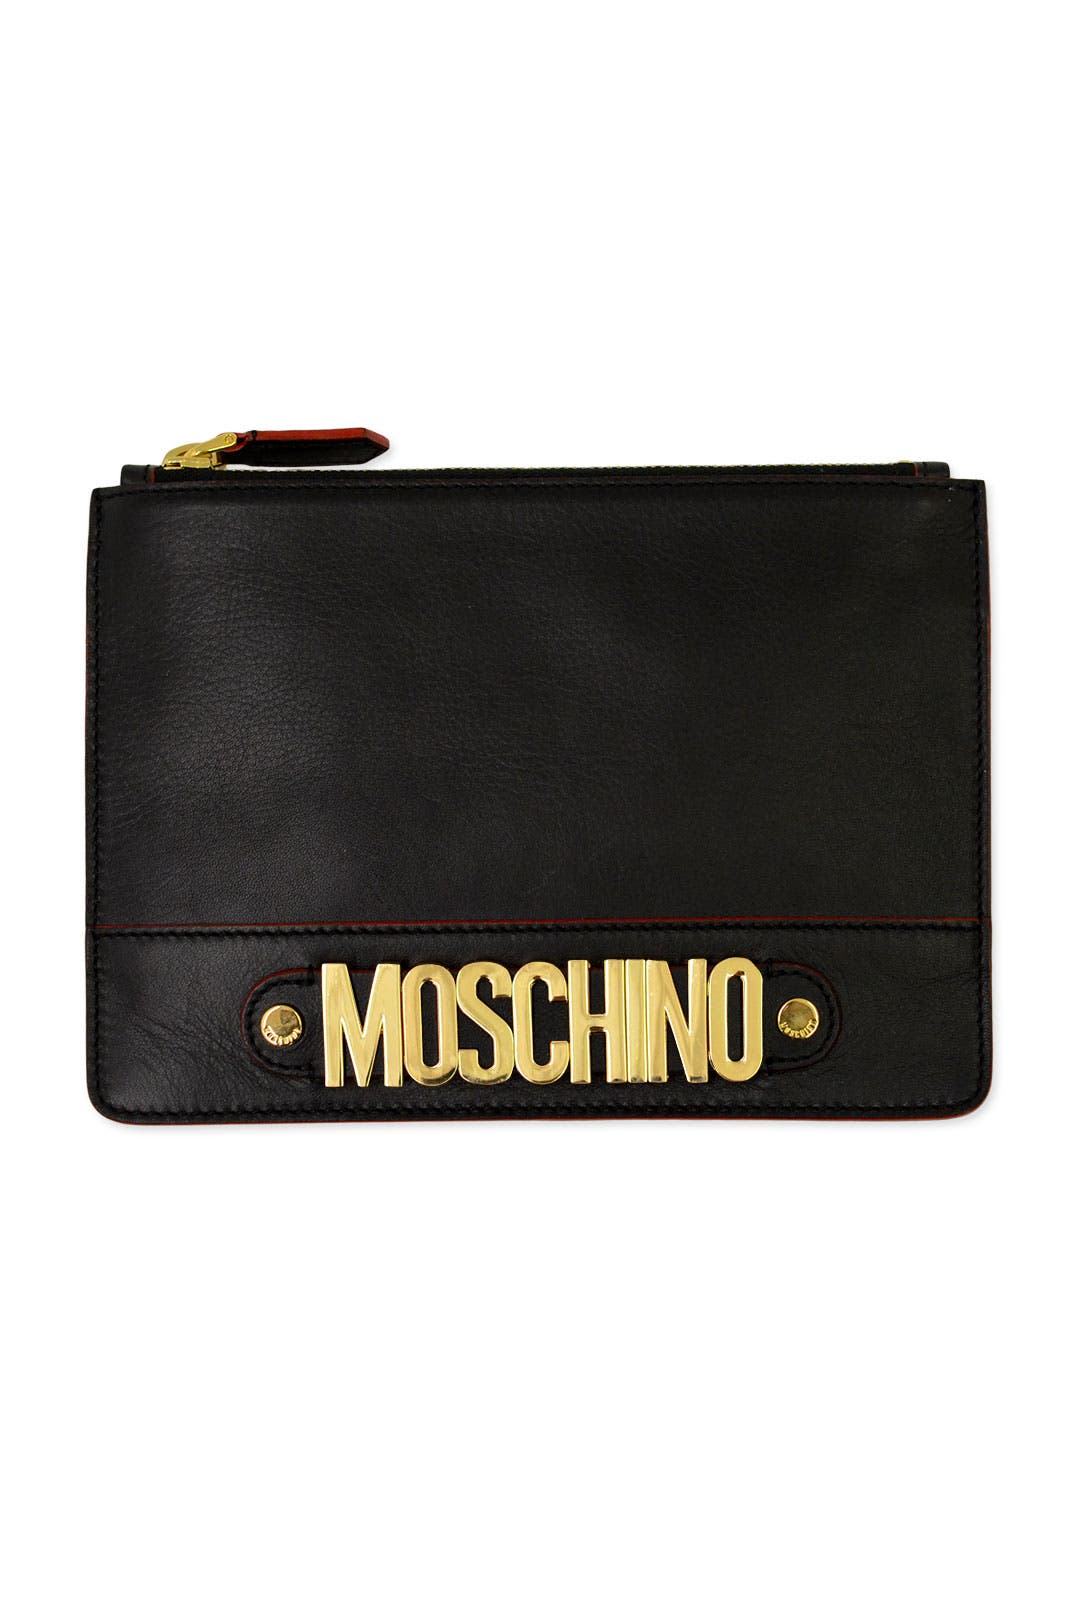 Jet Zip it To Me Clutch by Moschino Accessories